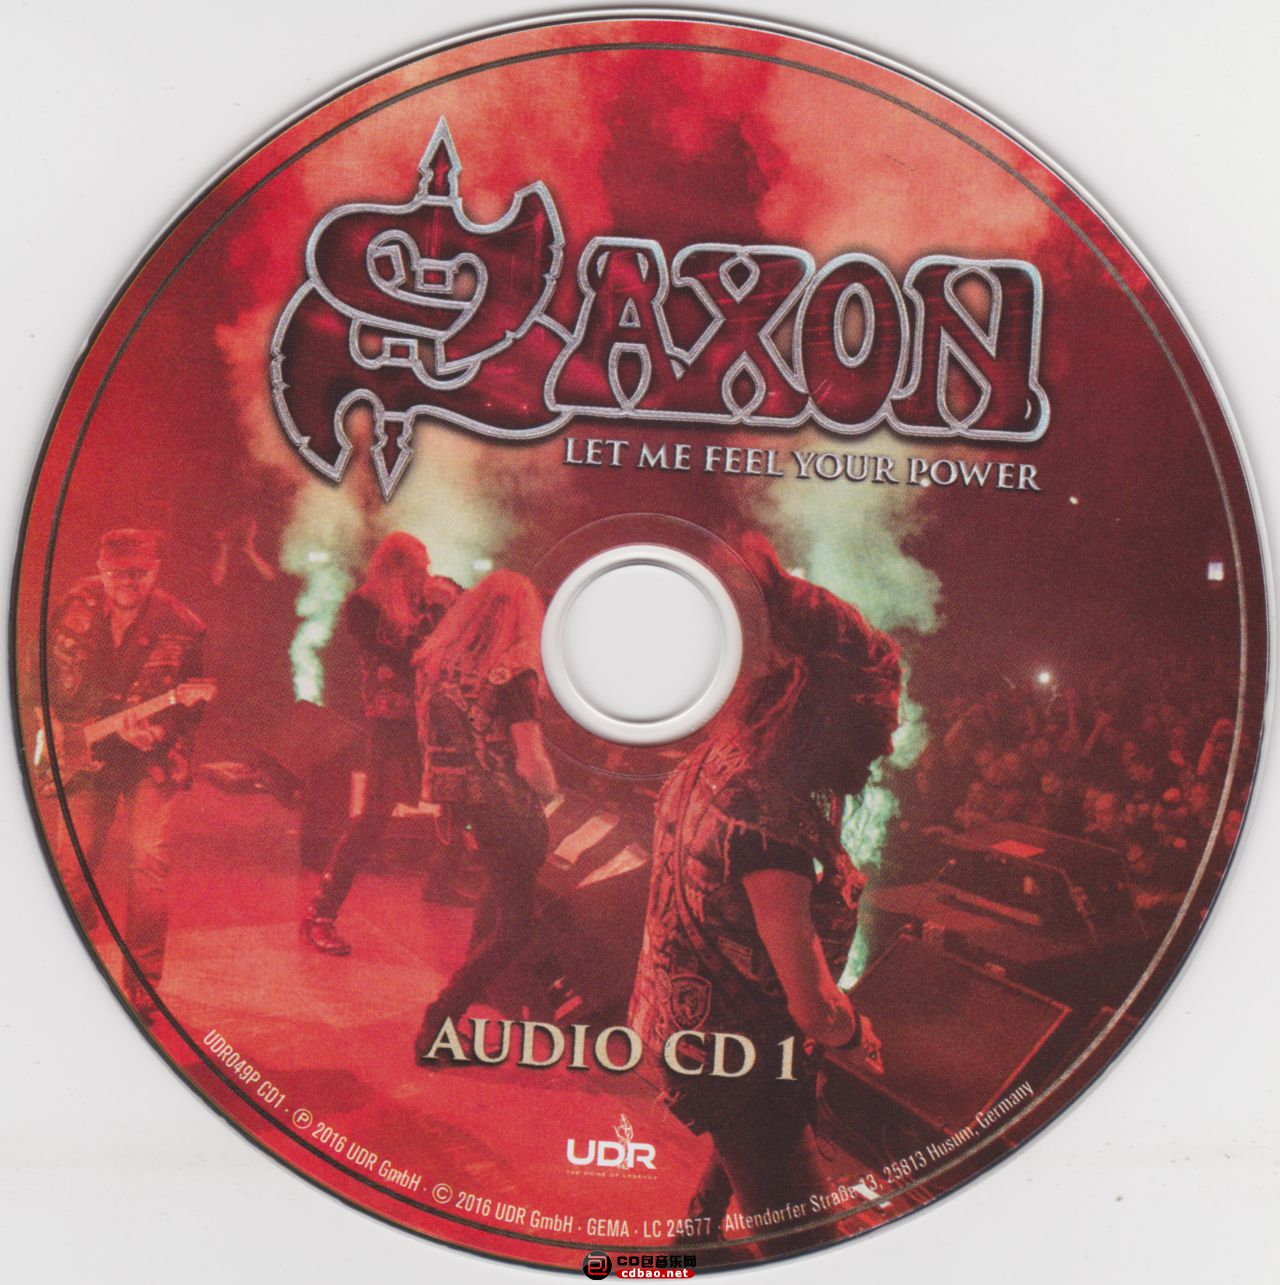 Saxon-2016-Let Me Feel Your Power-CD1.jpg